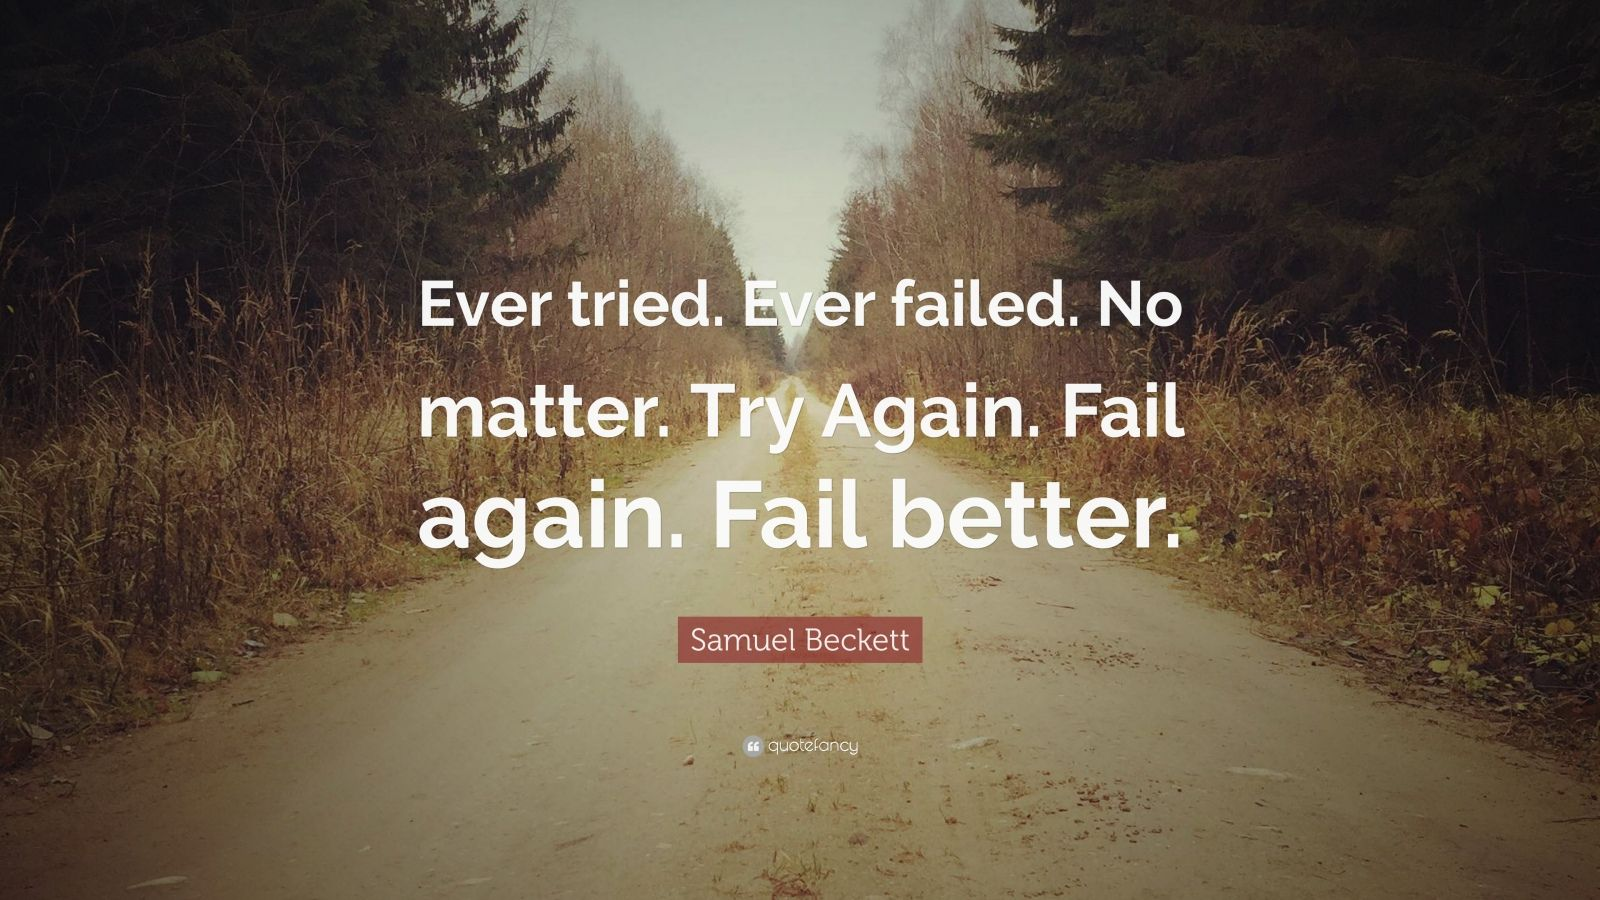 Persistence Quotes Wallpapers Samuel Beckett Quote Ever Tried Ever Failed No Matter